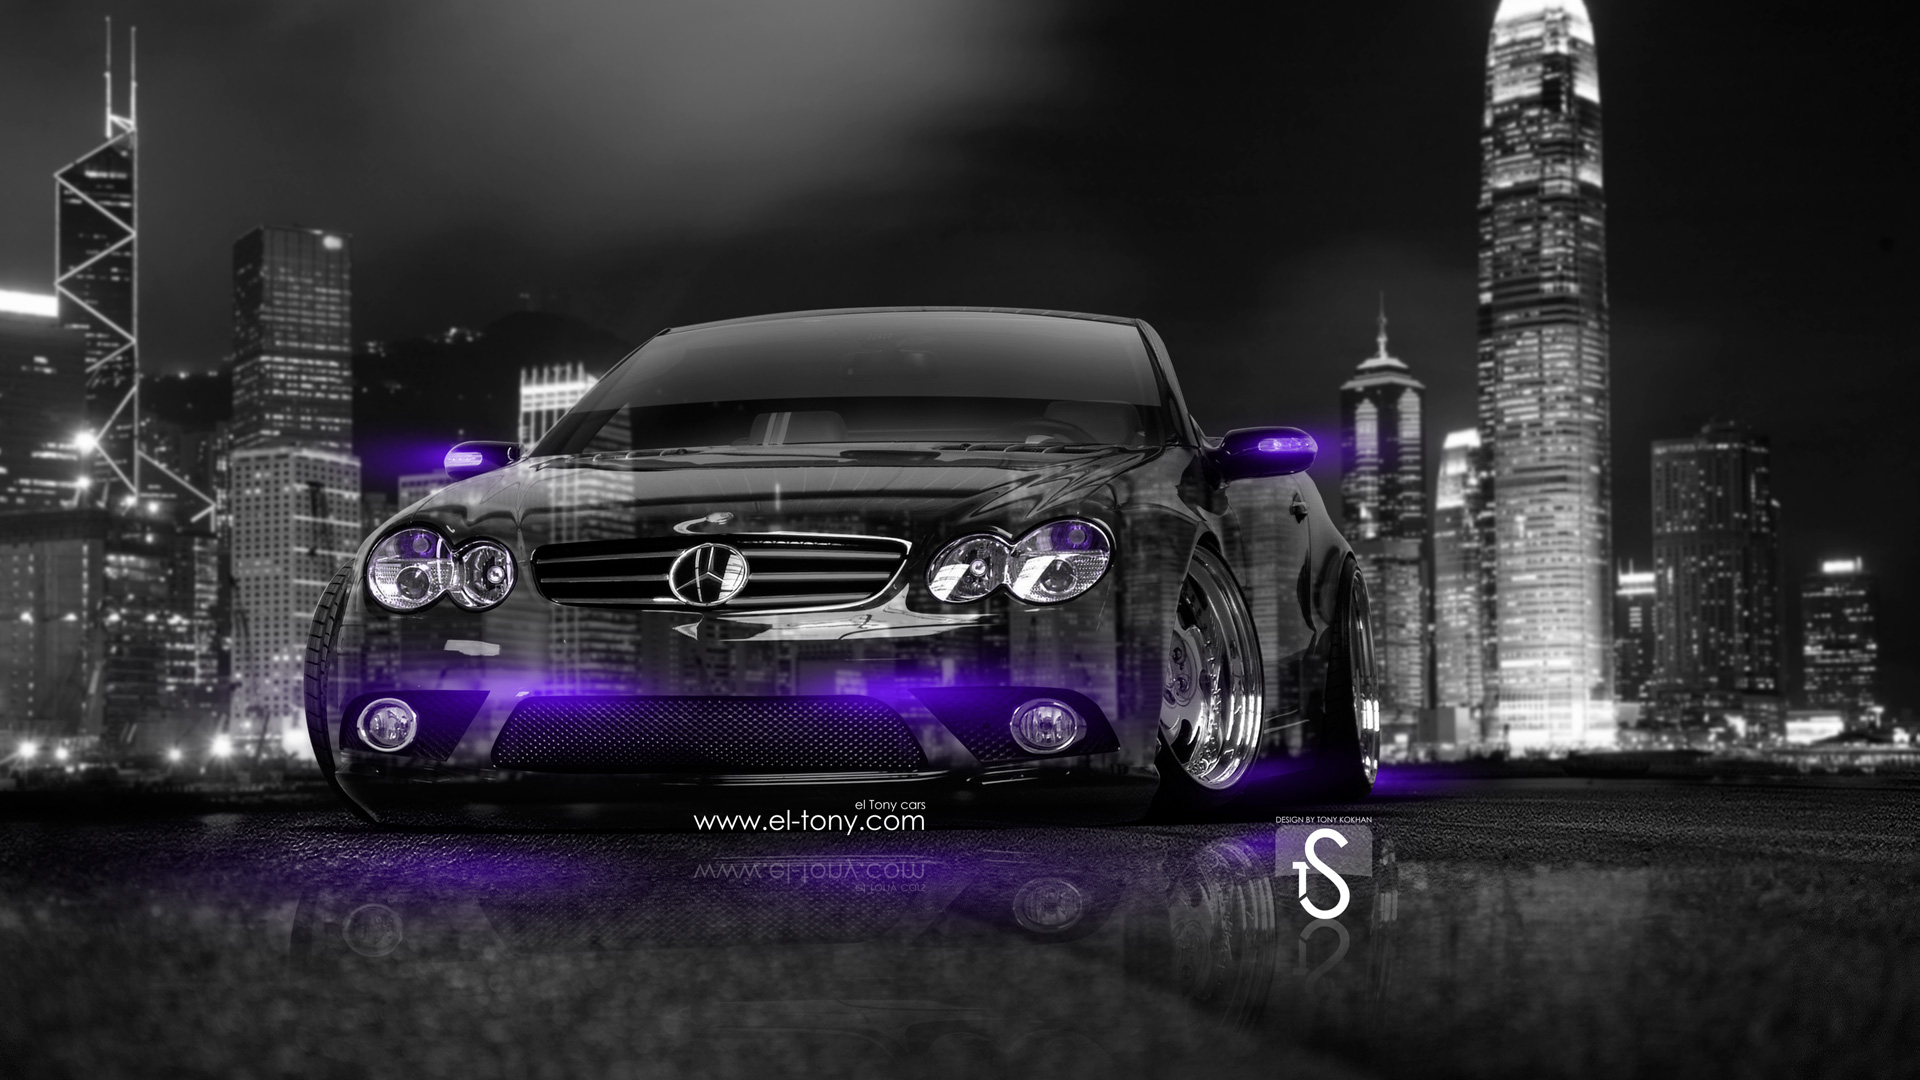 Charmant Mercedes SL55 Crystal City Car 2014 Violet Neon